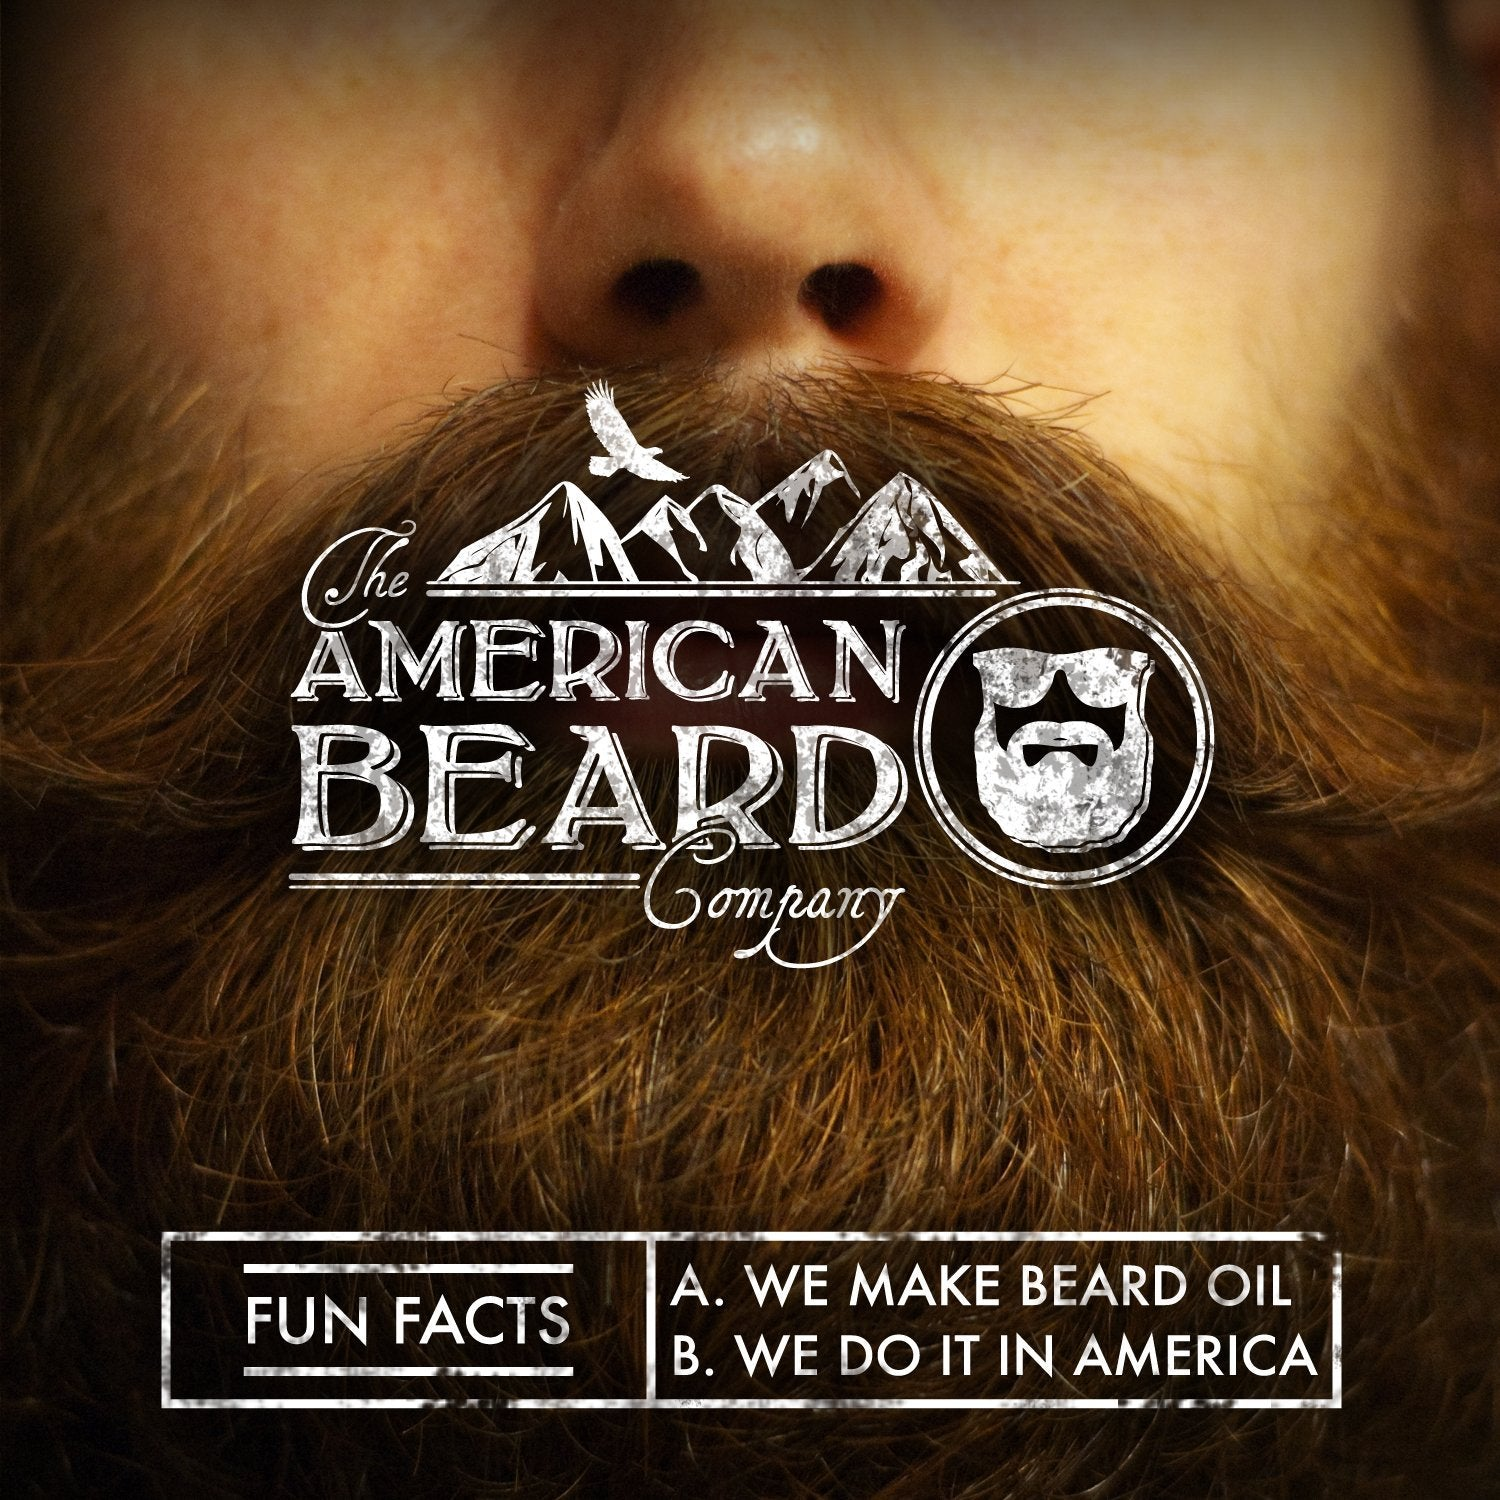 Why Beard Oil?